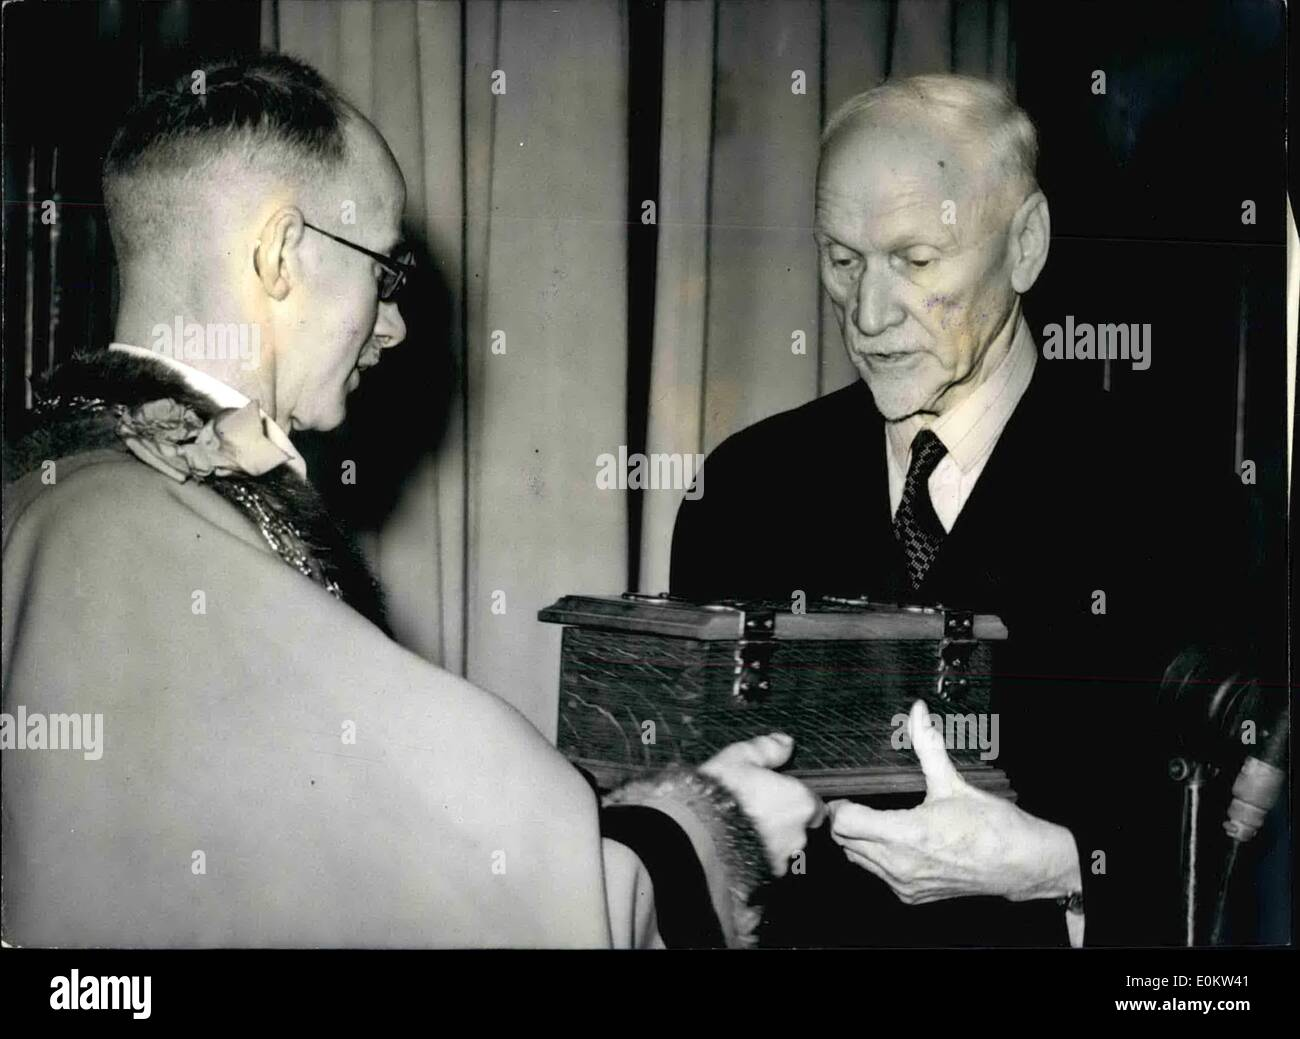 Mar. 03, 1950 - General Smuts Dies With A Broken Heart Famous Statesman - Aged Eighty: Eighty year old Jan Chr. Stain Smuts the - Stock Image